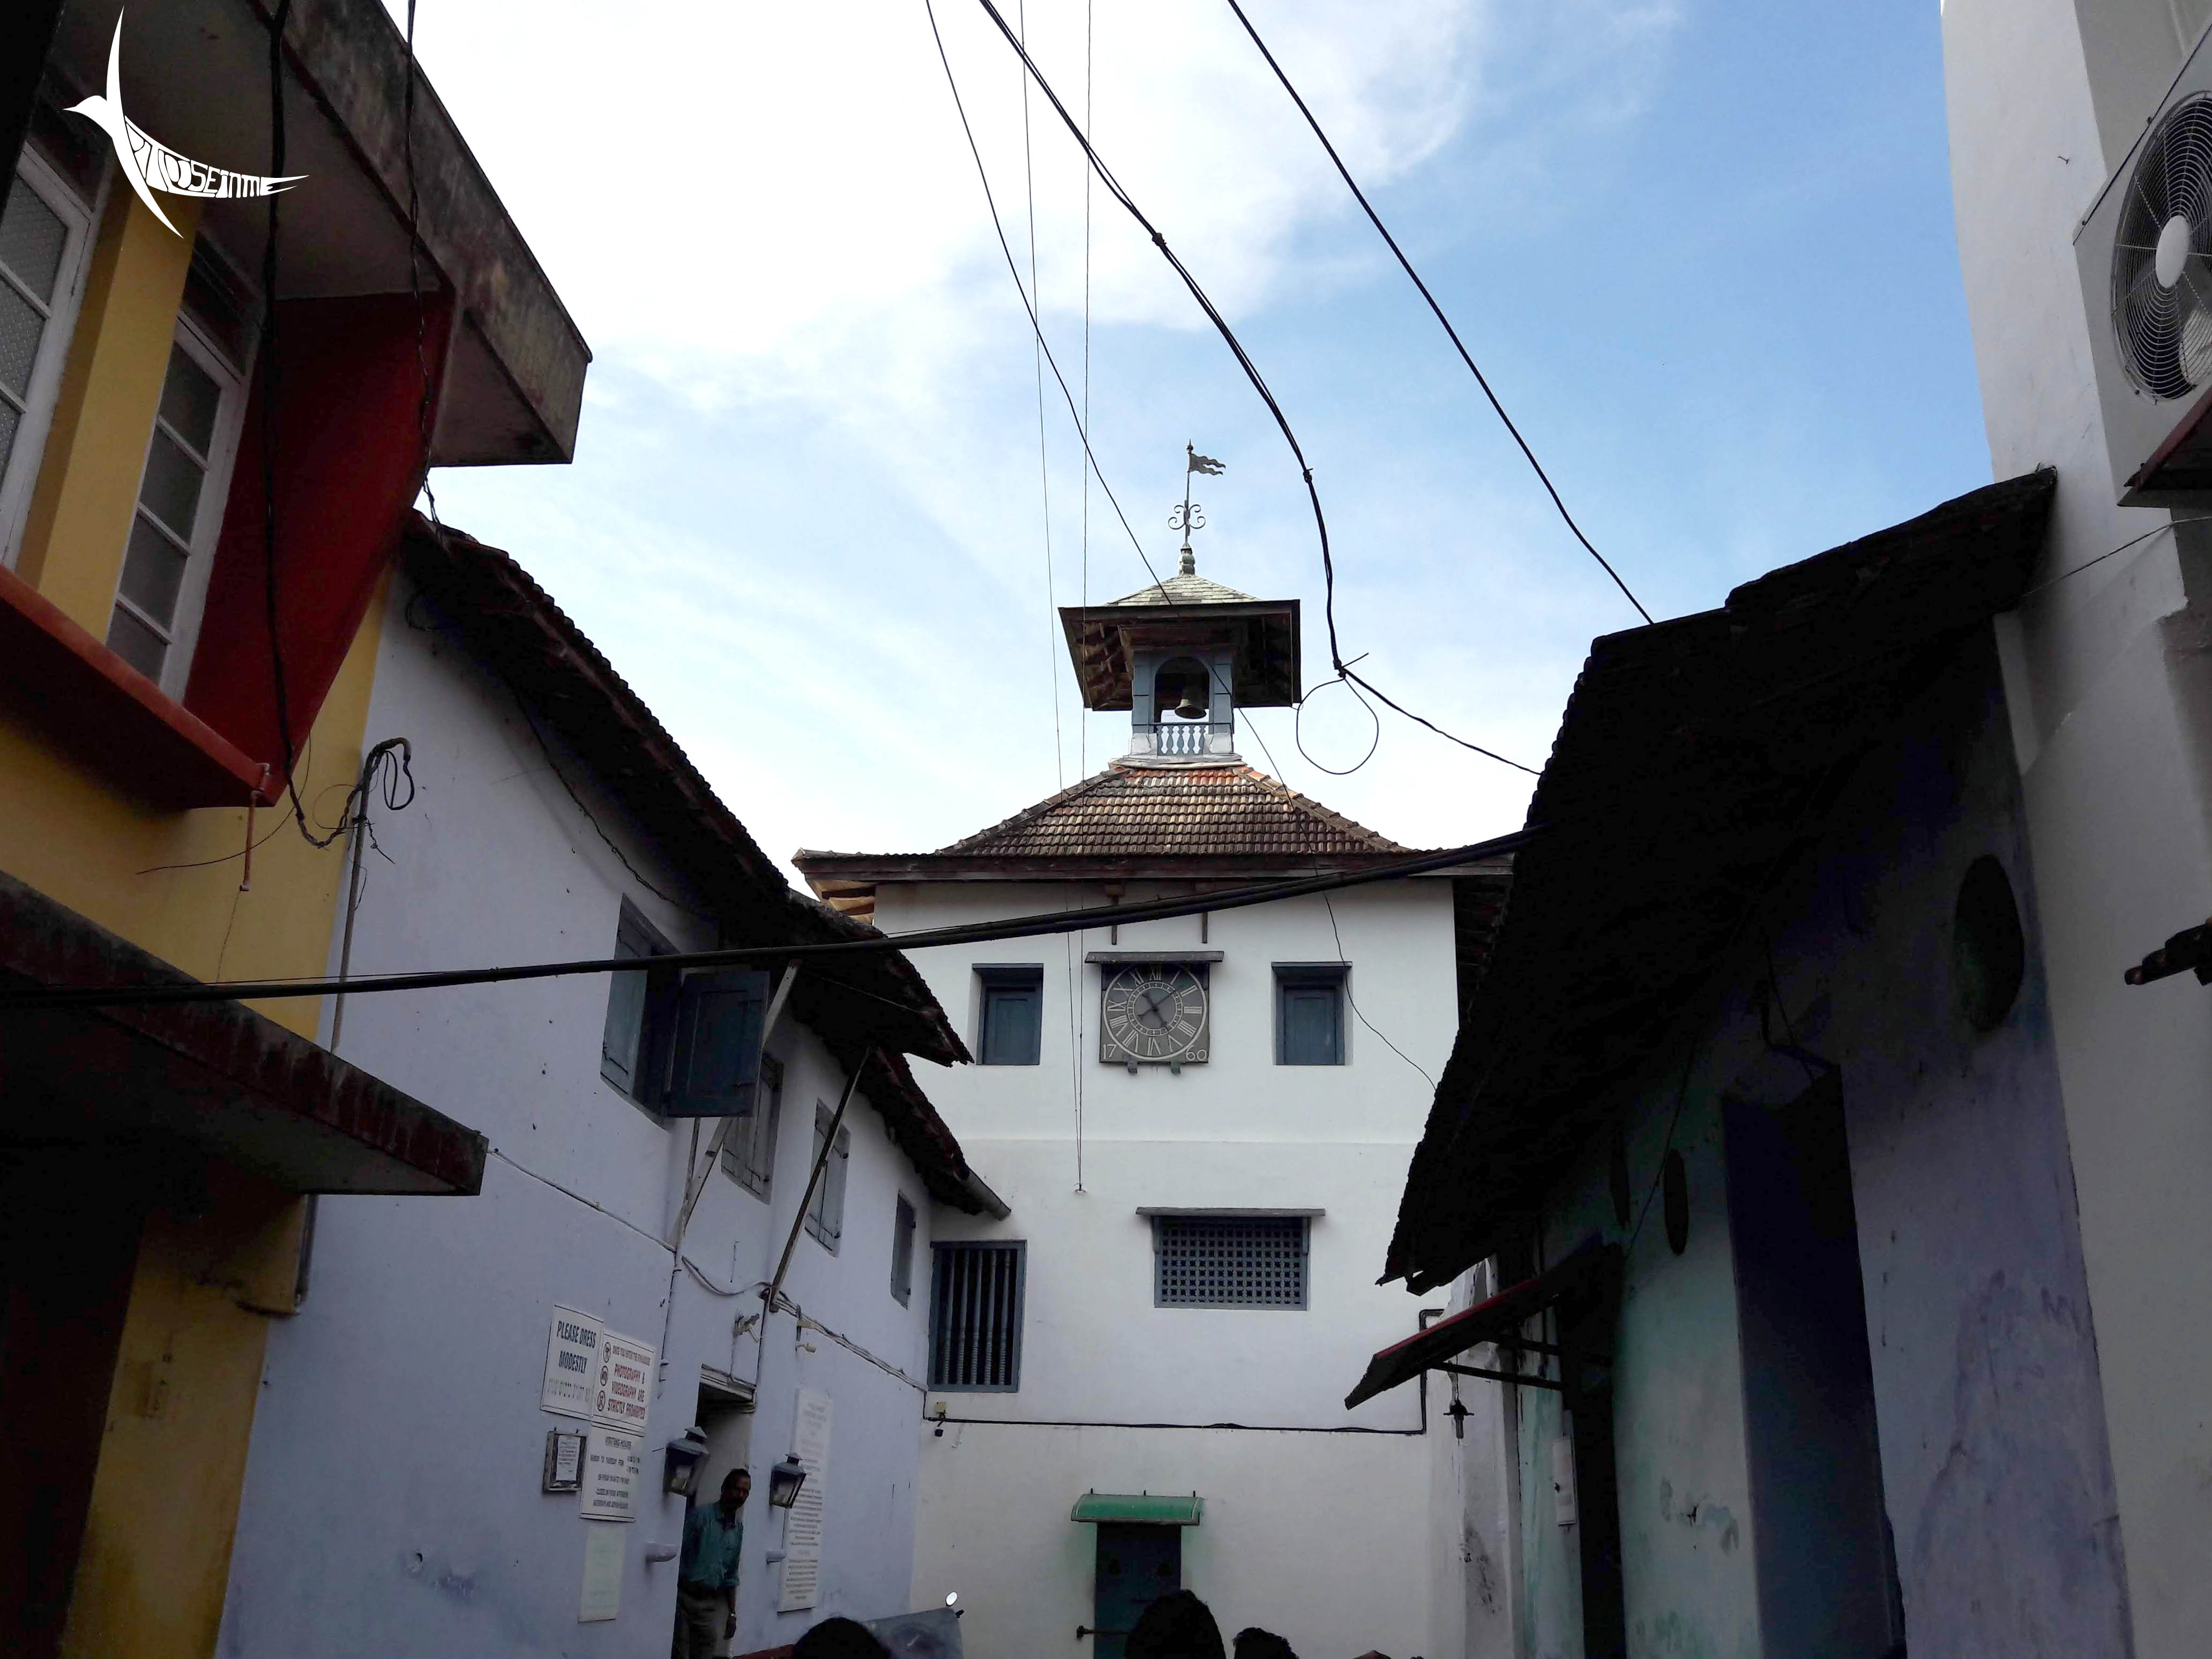 The clock tower of the Pardesi Synagogue